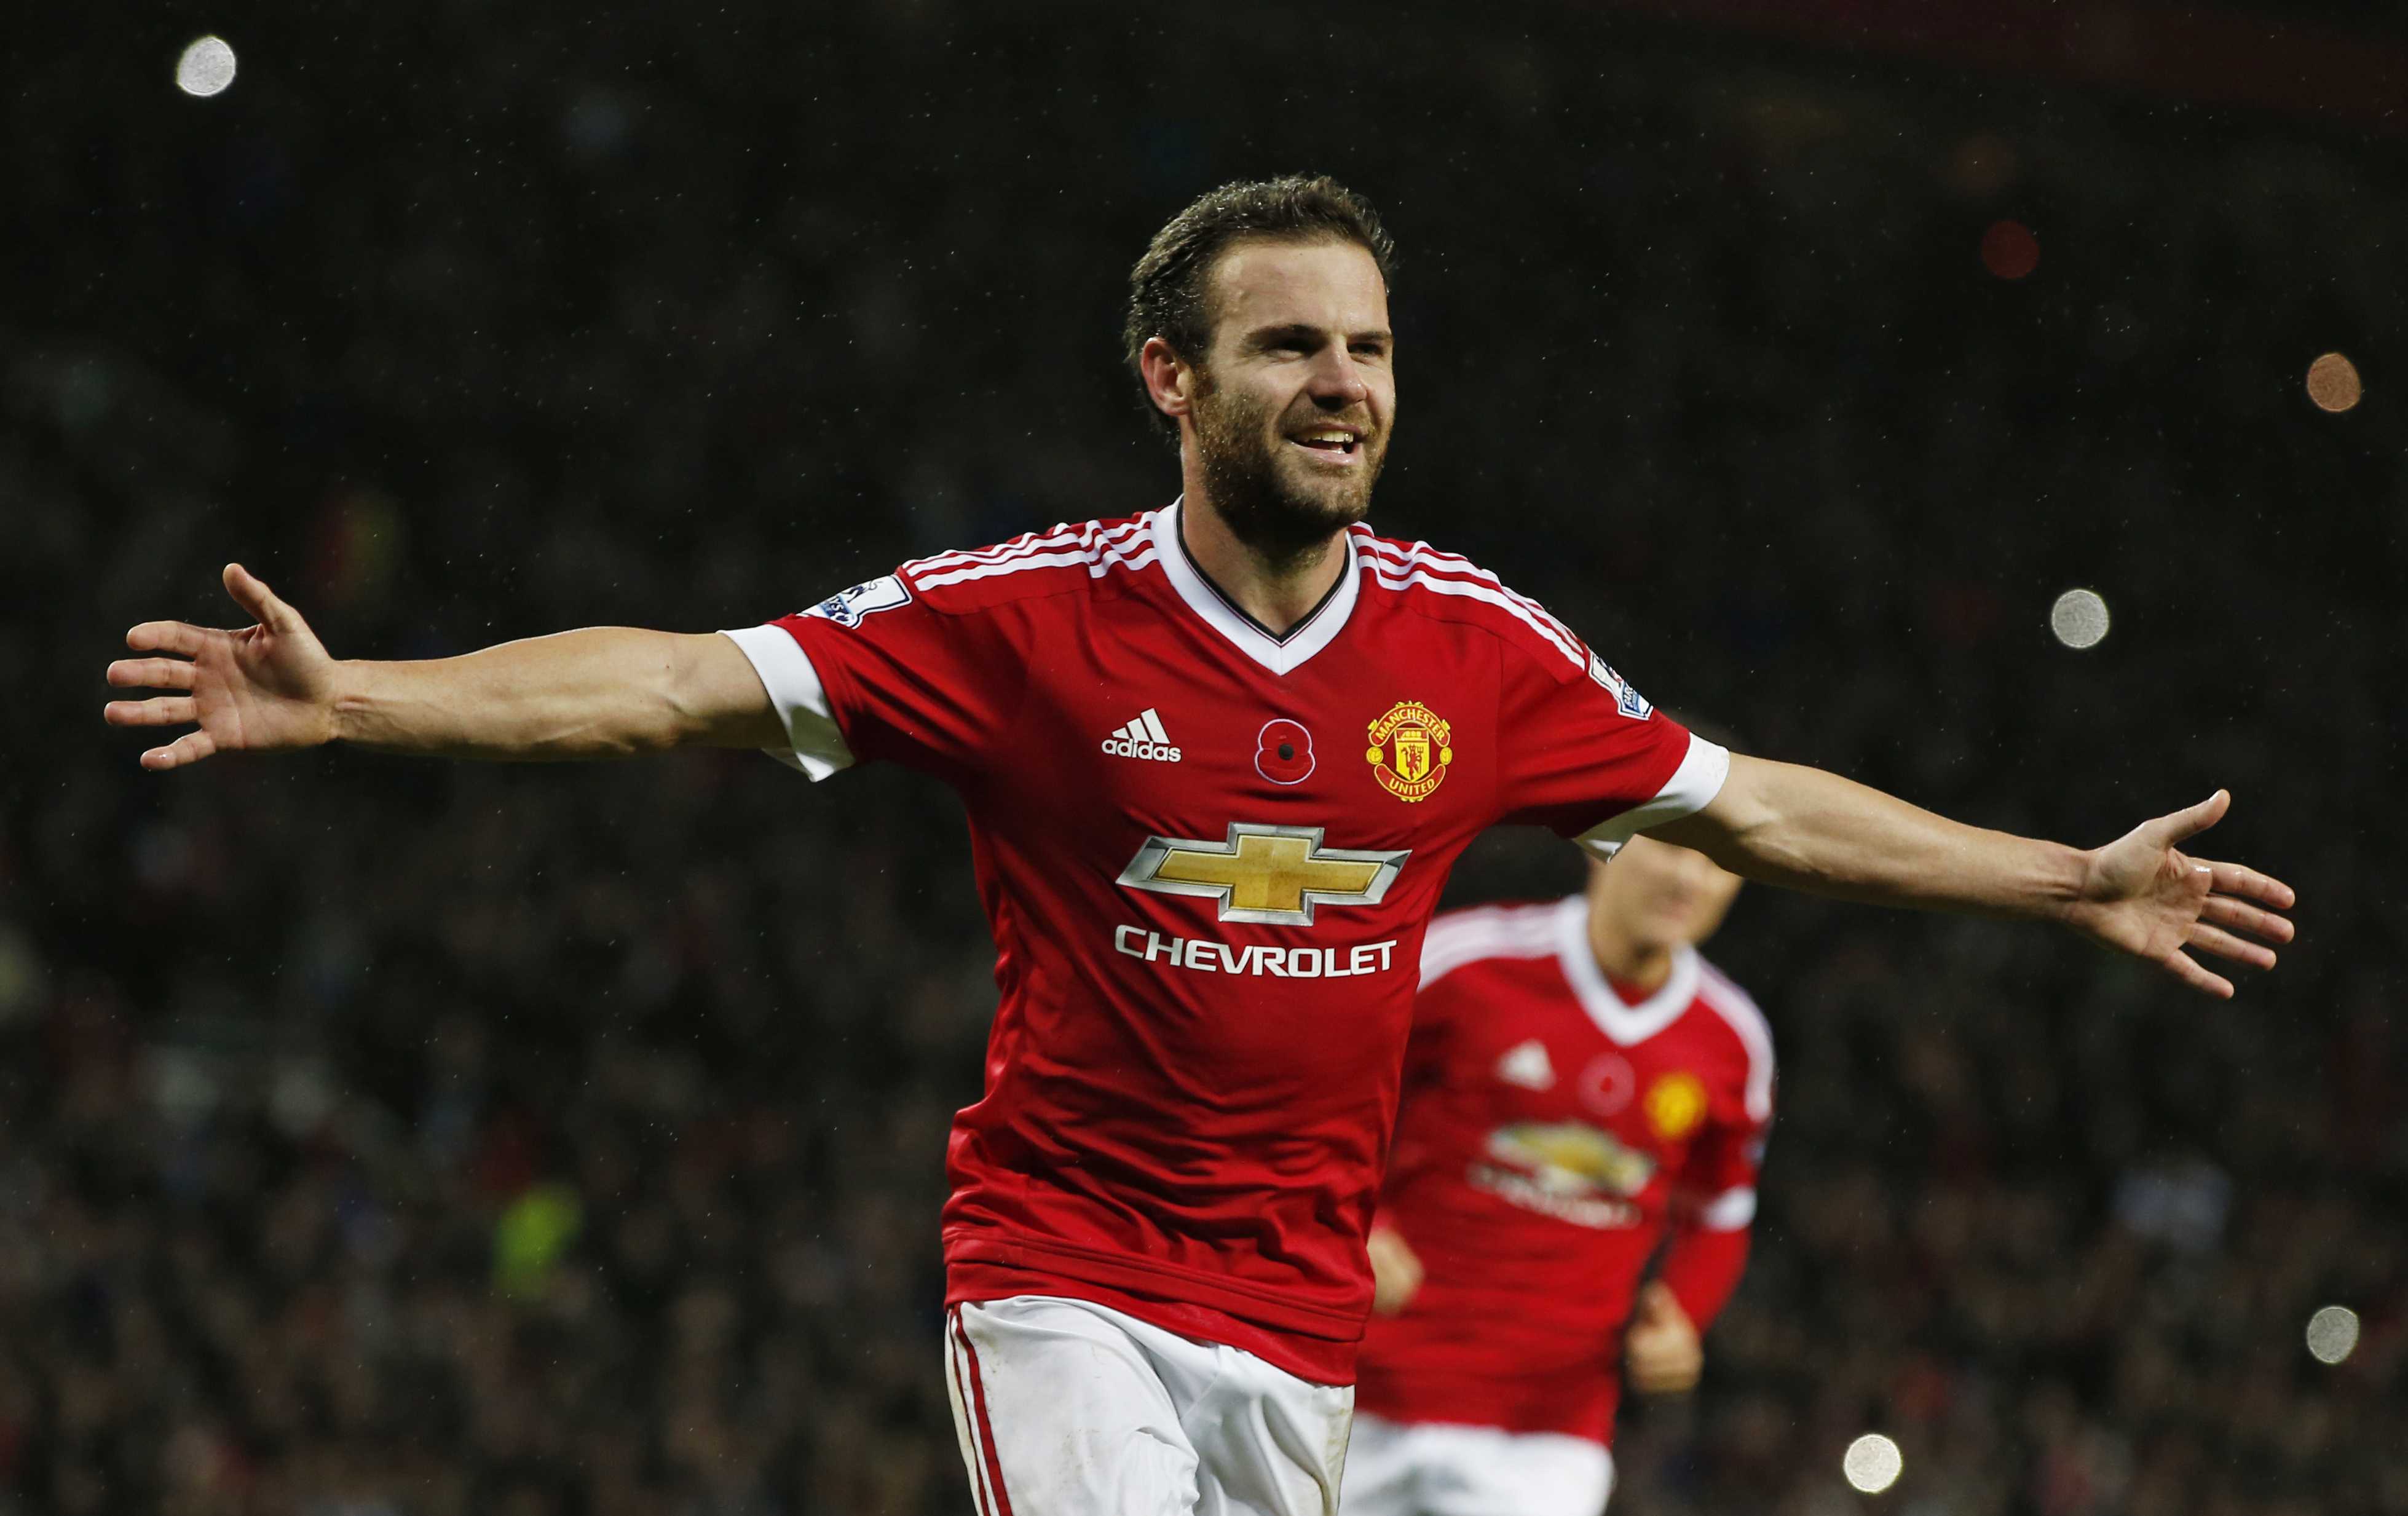 Manchester United's Juan Mata celebrates scoring their second goal during the Barclays Premier League game against West Bromwich Albion at Old Trafford on November 7, 2015. Photo: Reuters